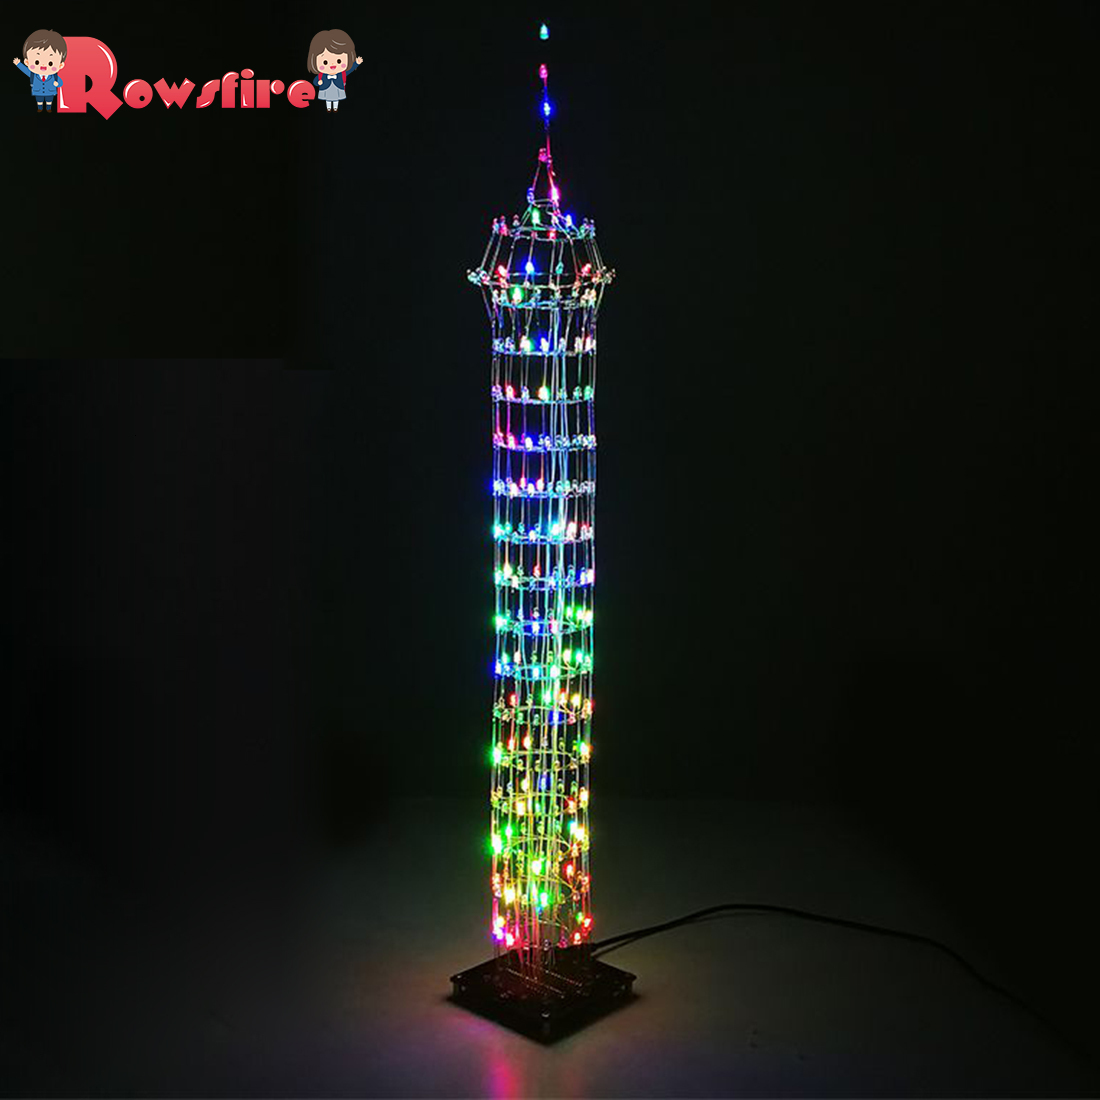 DIY Colorful LED Display Lamp Infrared Remote Control DIY Welding Light Kits DIY Lamp Brain-Training Toy - Macao Tower